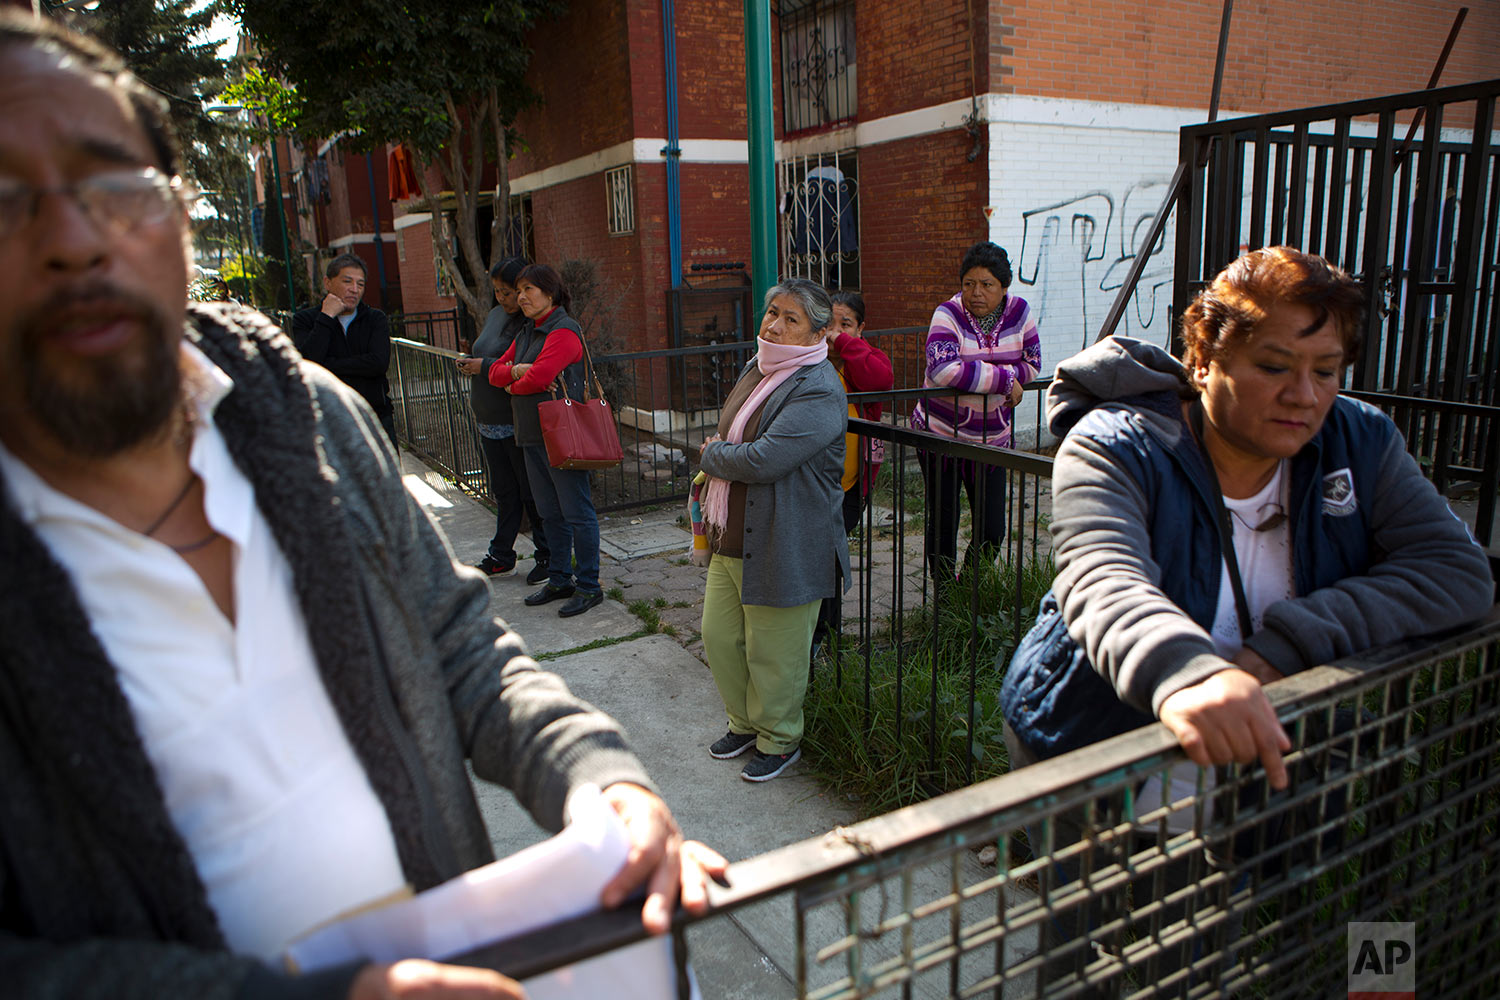 In this Jan. 19, 2018 photo, Veronica Martinez Hernandez, right, and Emmanuel Garcia Carbajal, left, stand along with other neighbors outside the condemned and chained up housing blocks where they lived until September's earthquake, in a housing complex at Ignacio Zaragoza 2980 in eastern Mexico City. Residents say the government has offered no information or help since saying six of their housing blocks will have to be demolished without being rebuilt. (AP Photo/Rebecca Blackwell)